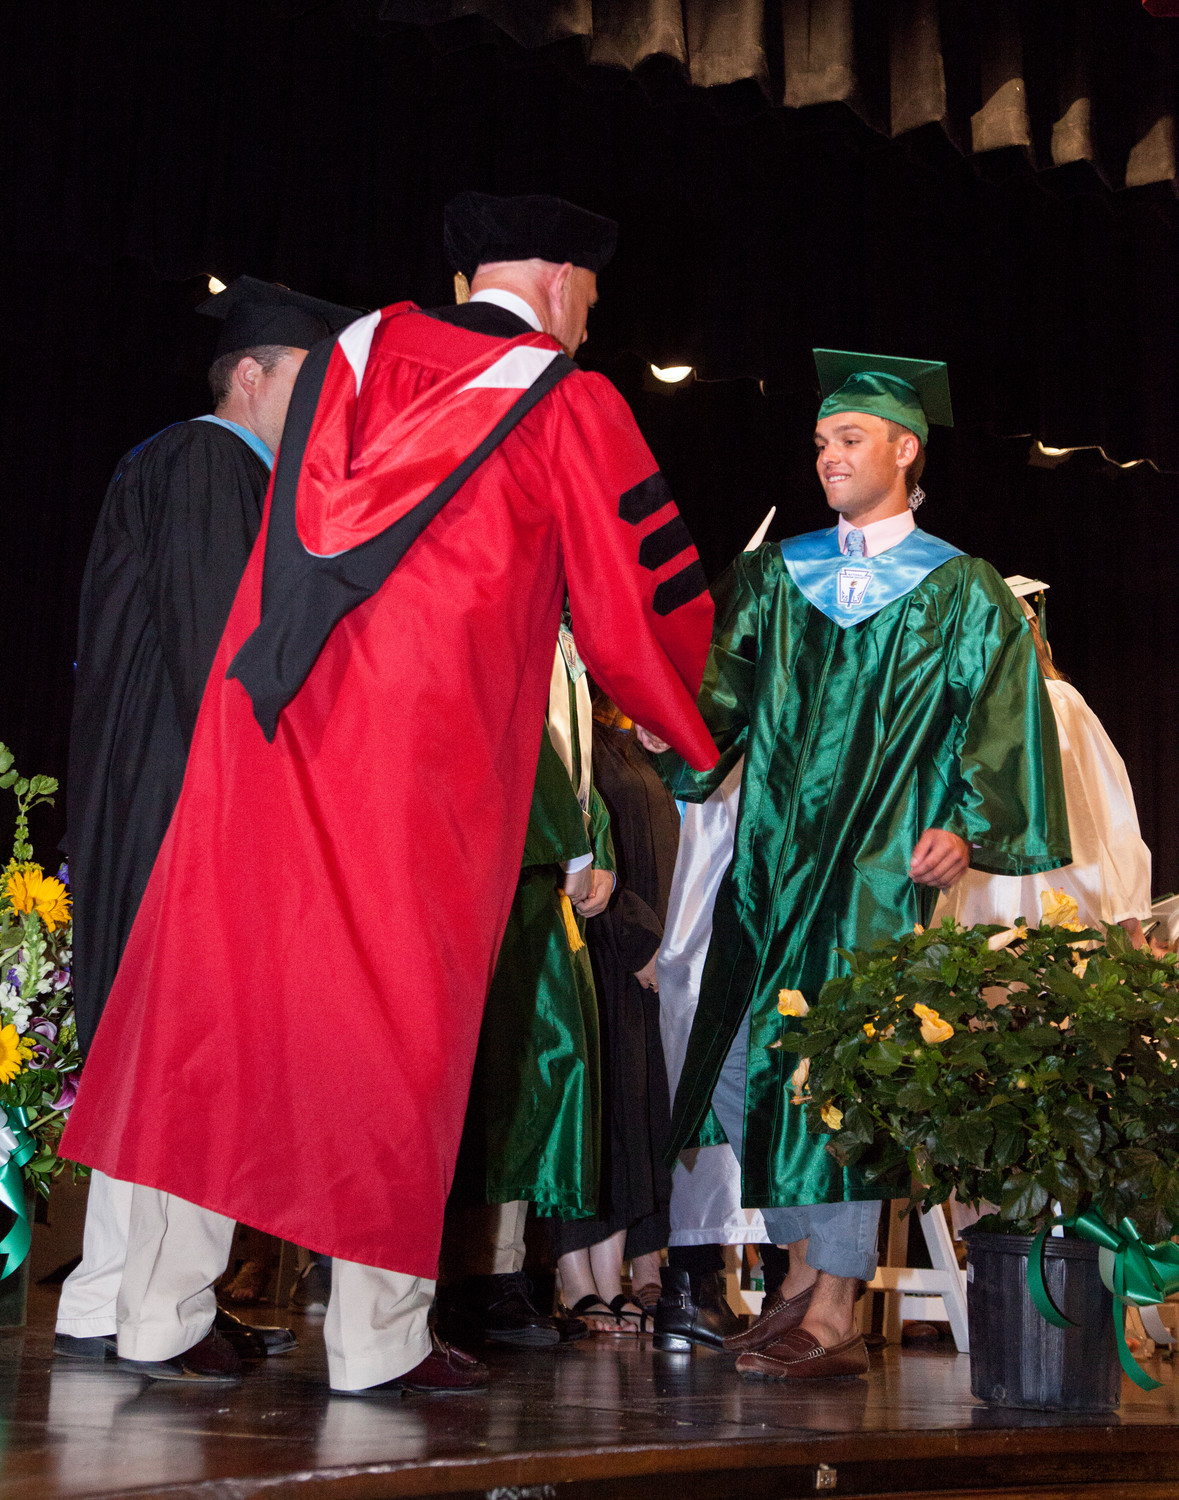 It was a proud day for all of the graduates, especially when they received their diploma, at left.